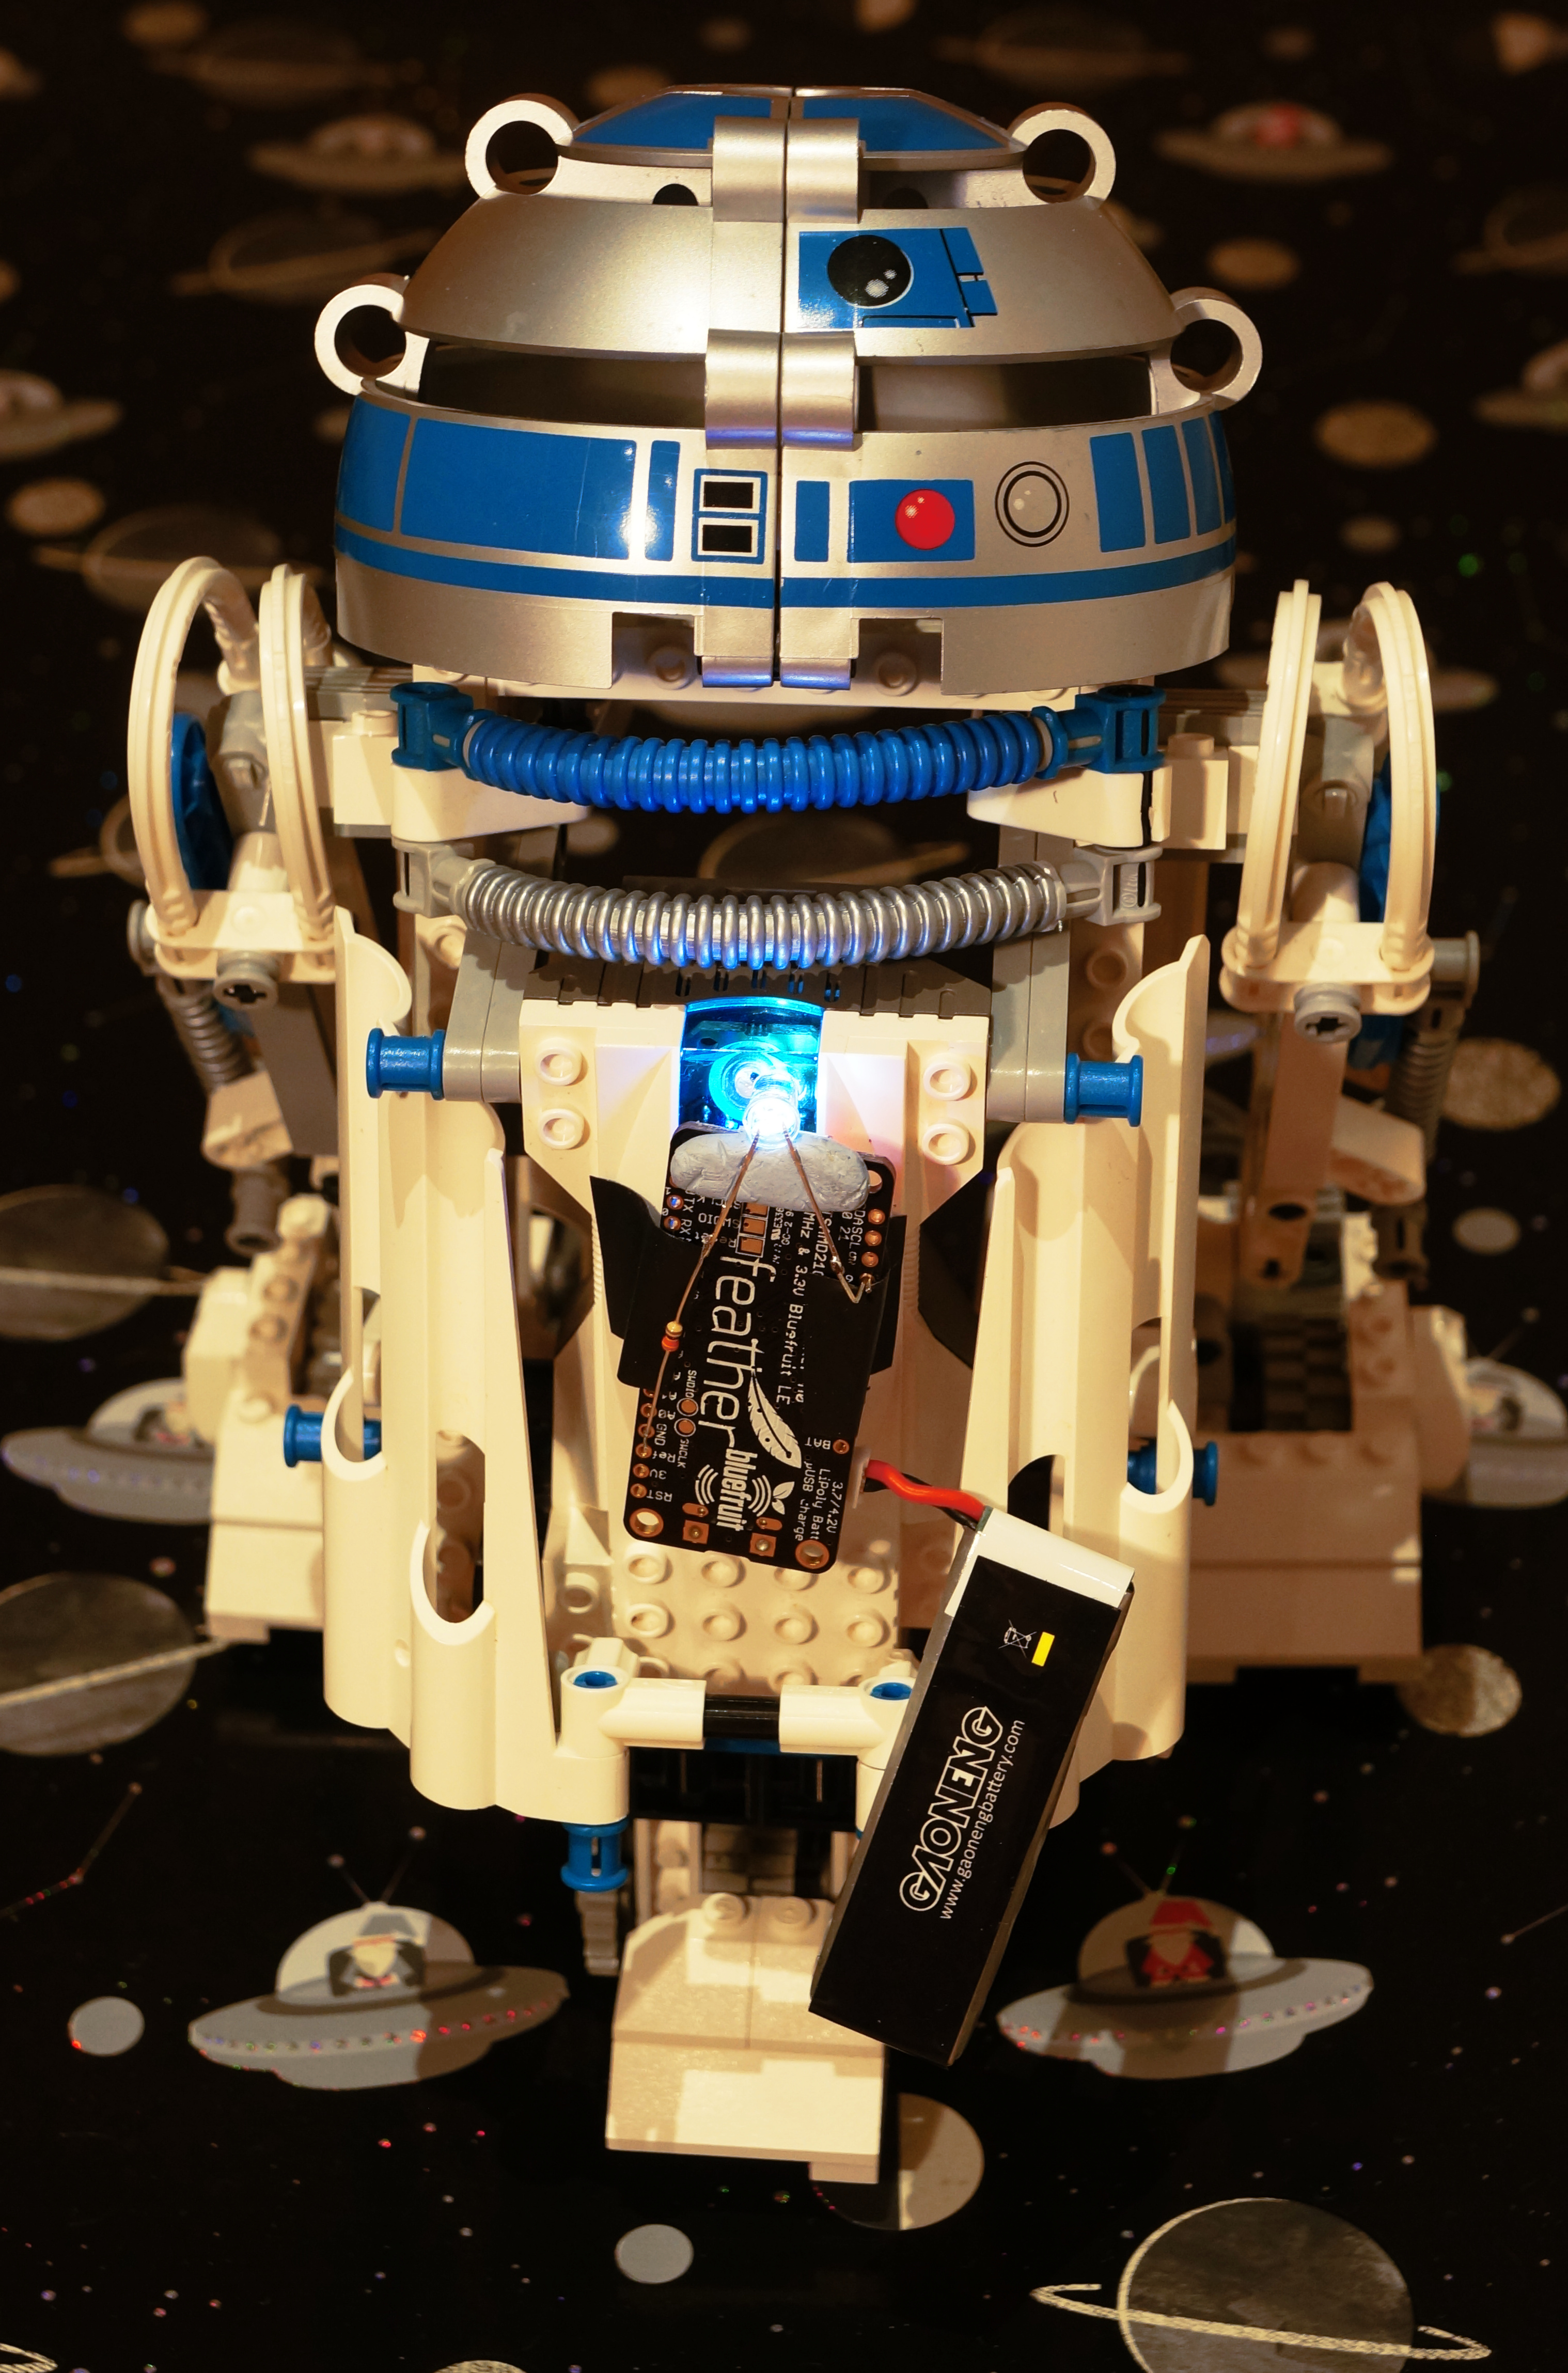 droiddeveloperkit-r2d2-with-feather-closeup-hires.JPG